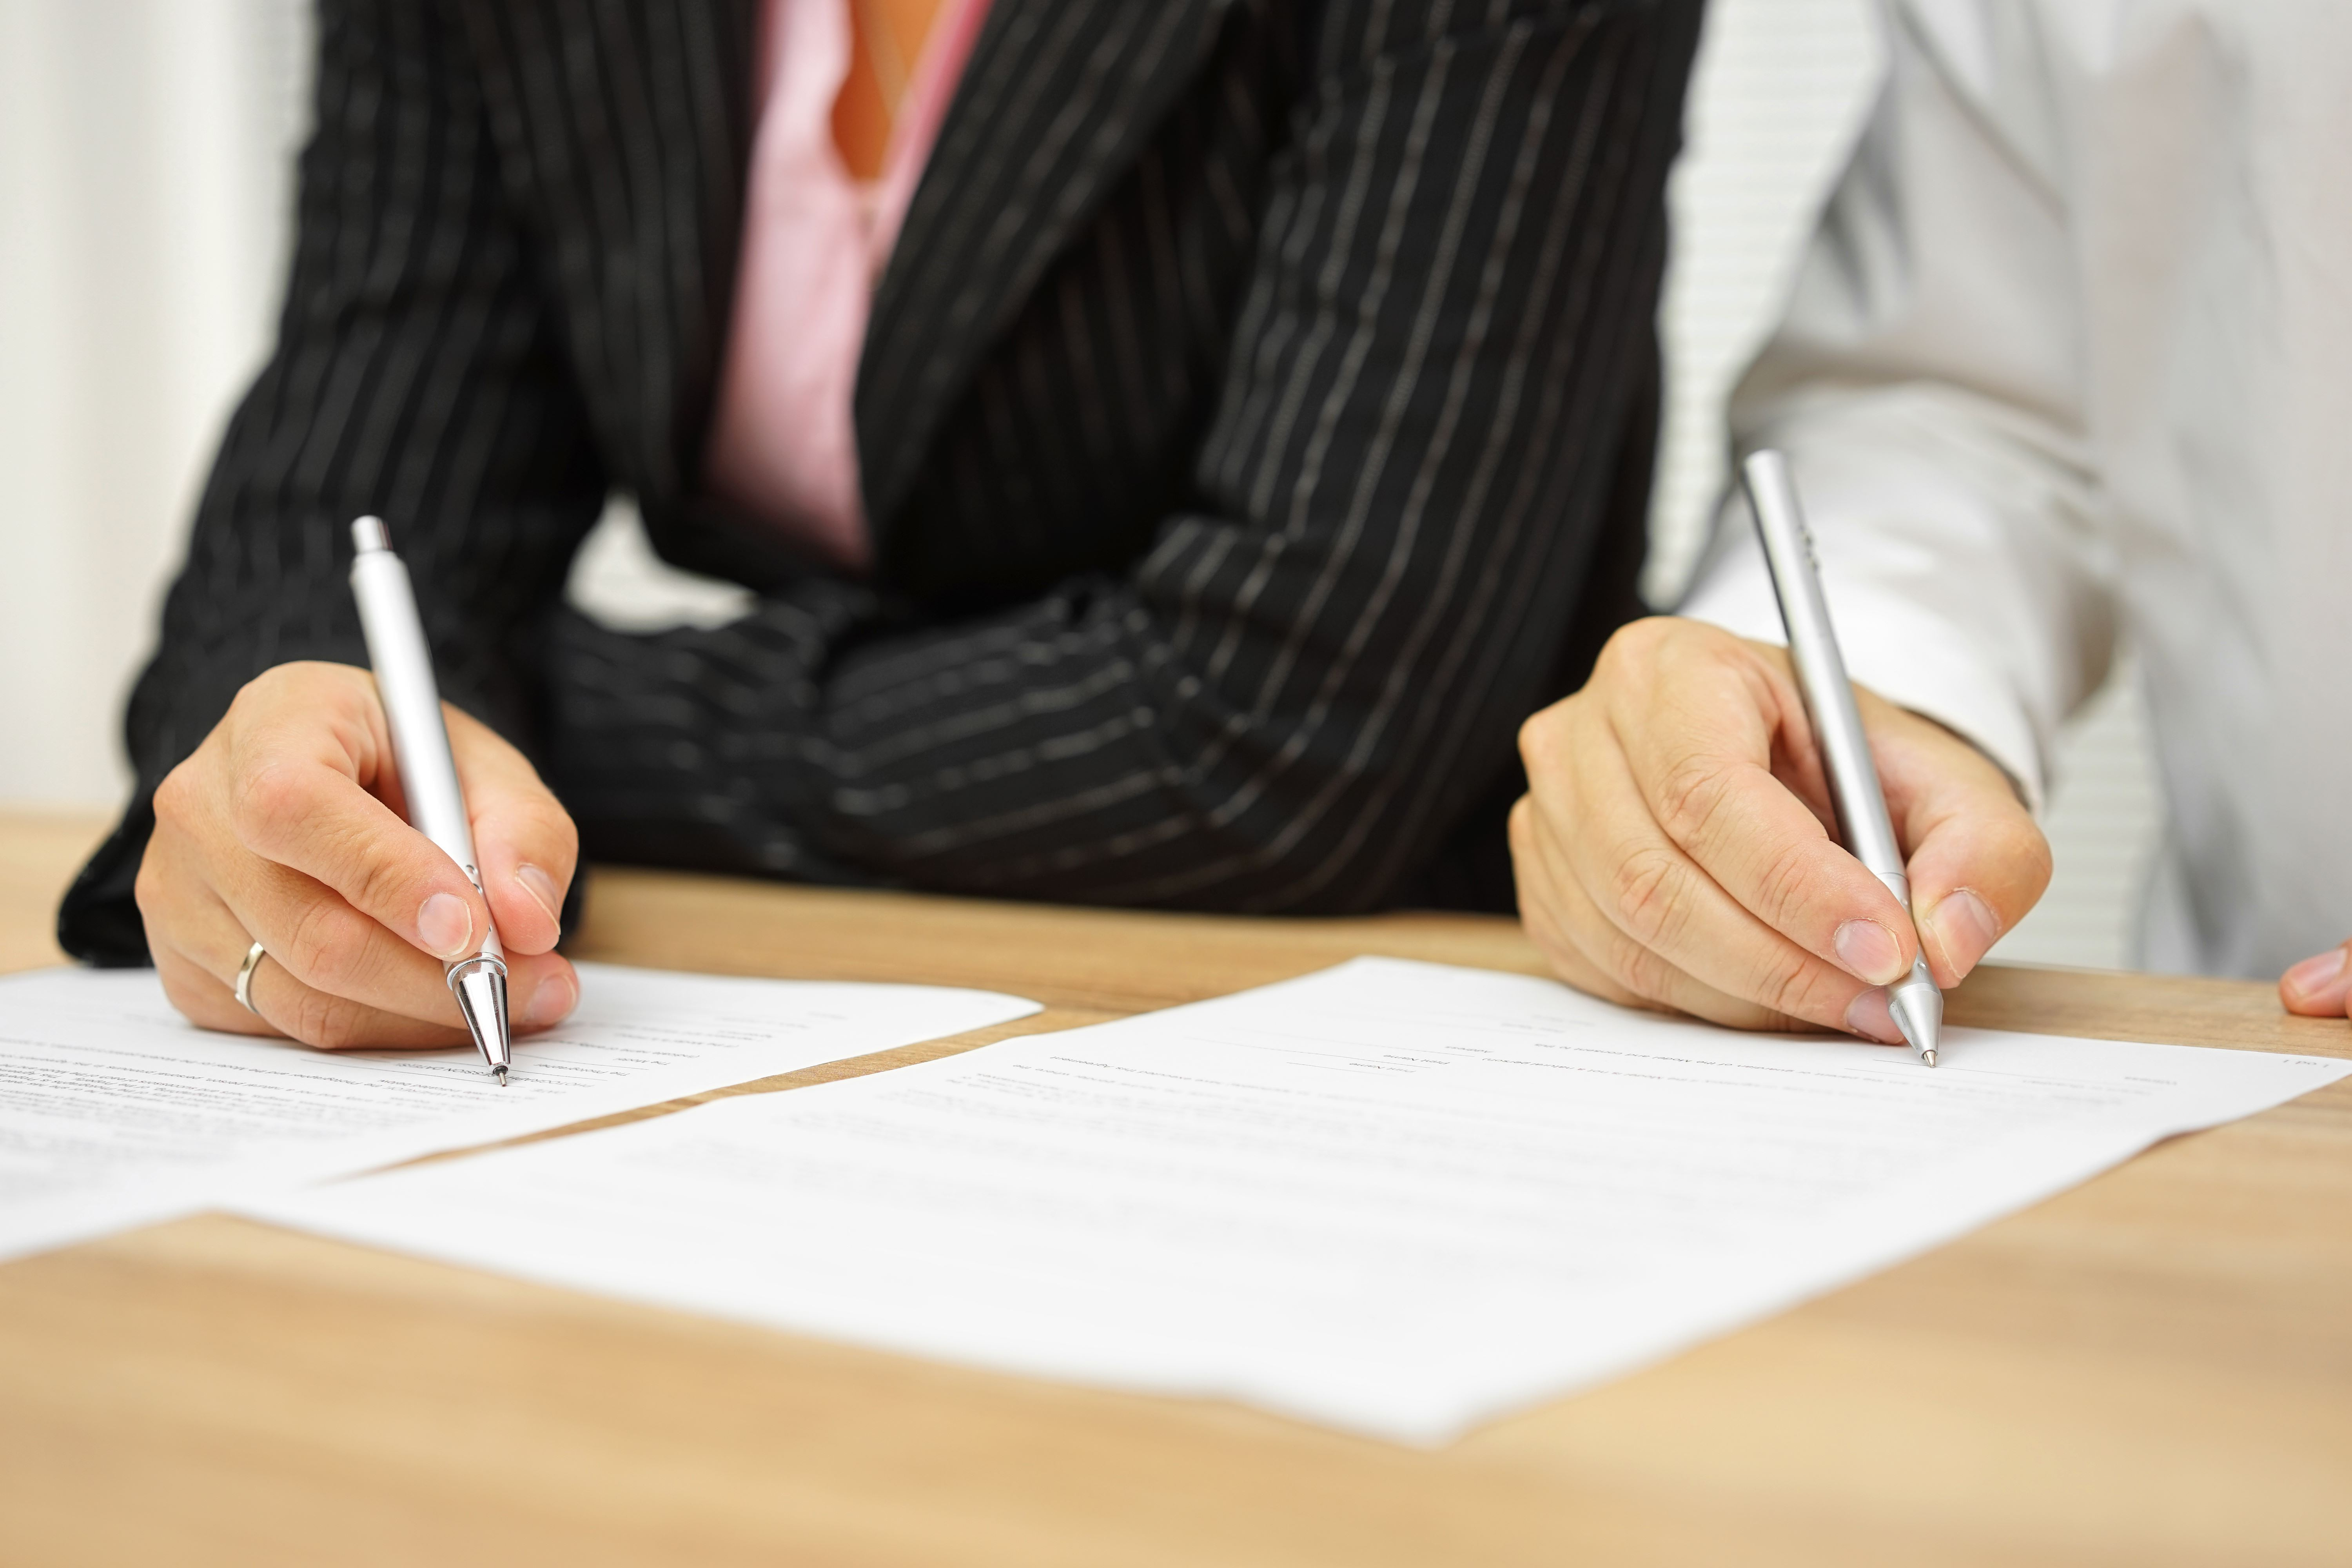 Man and woman signing papers - grounds for legal separation